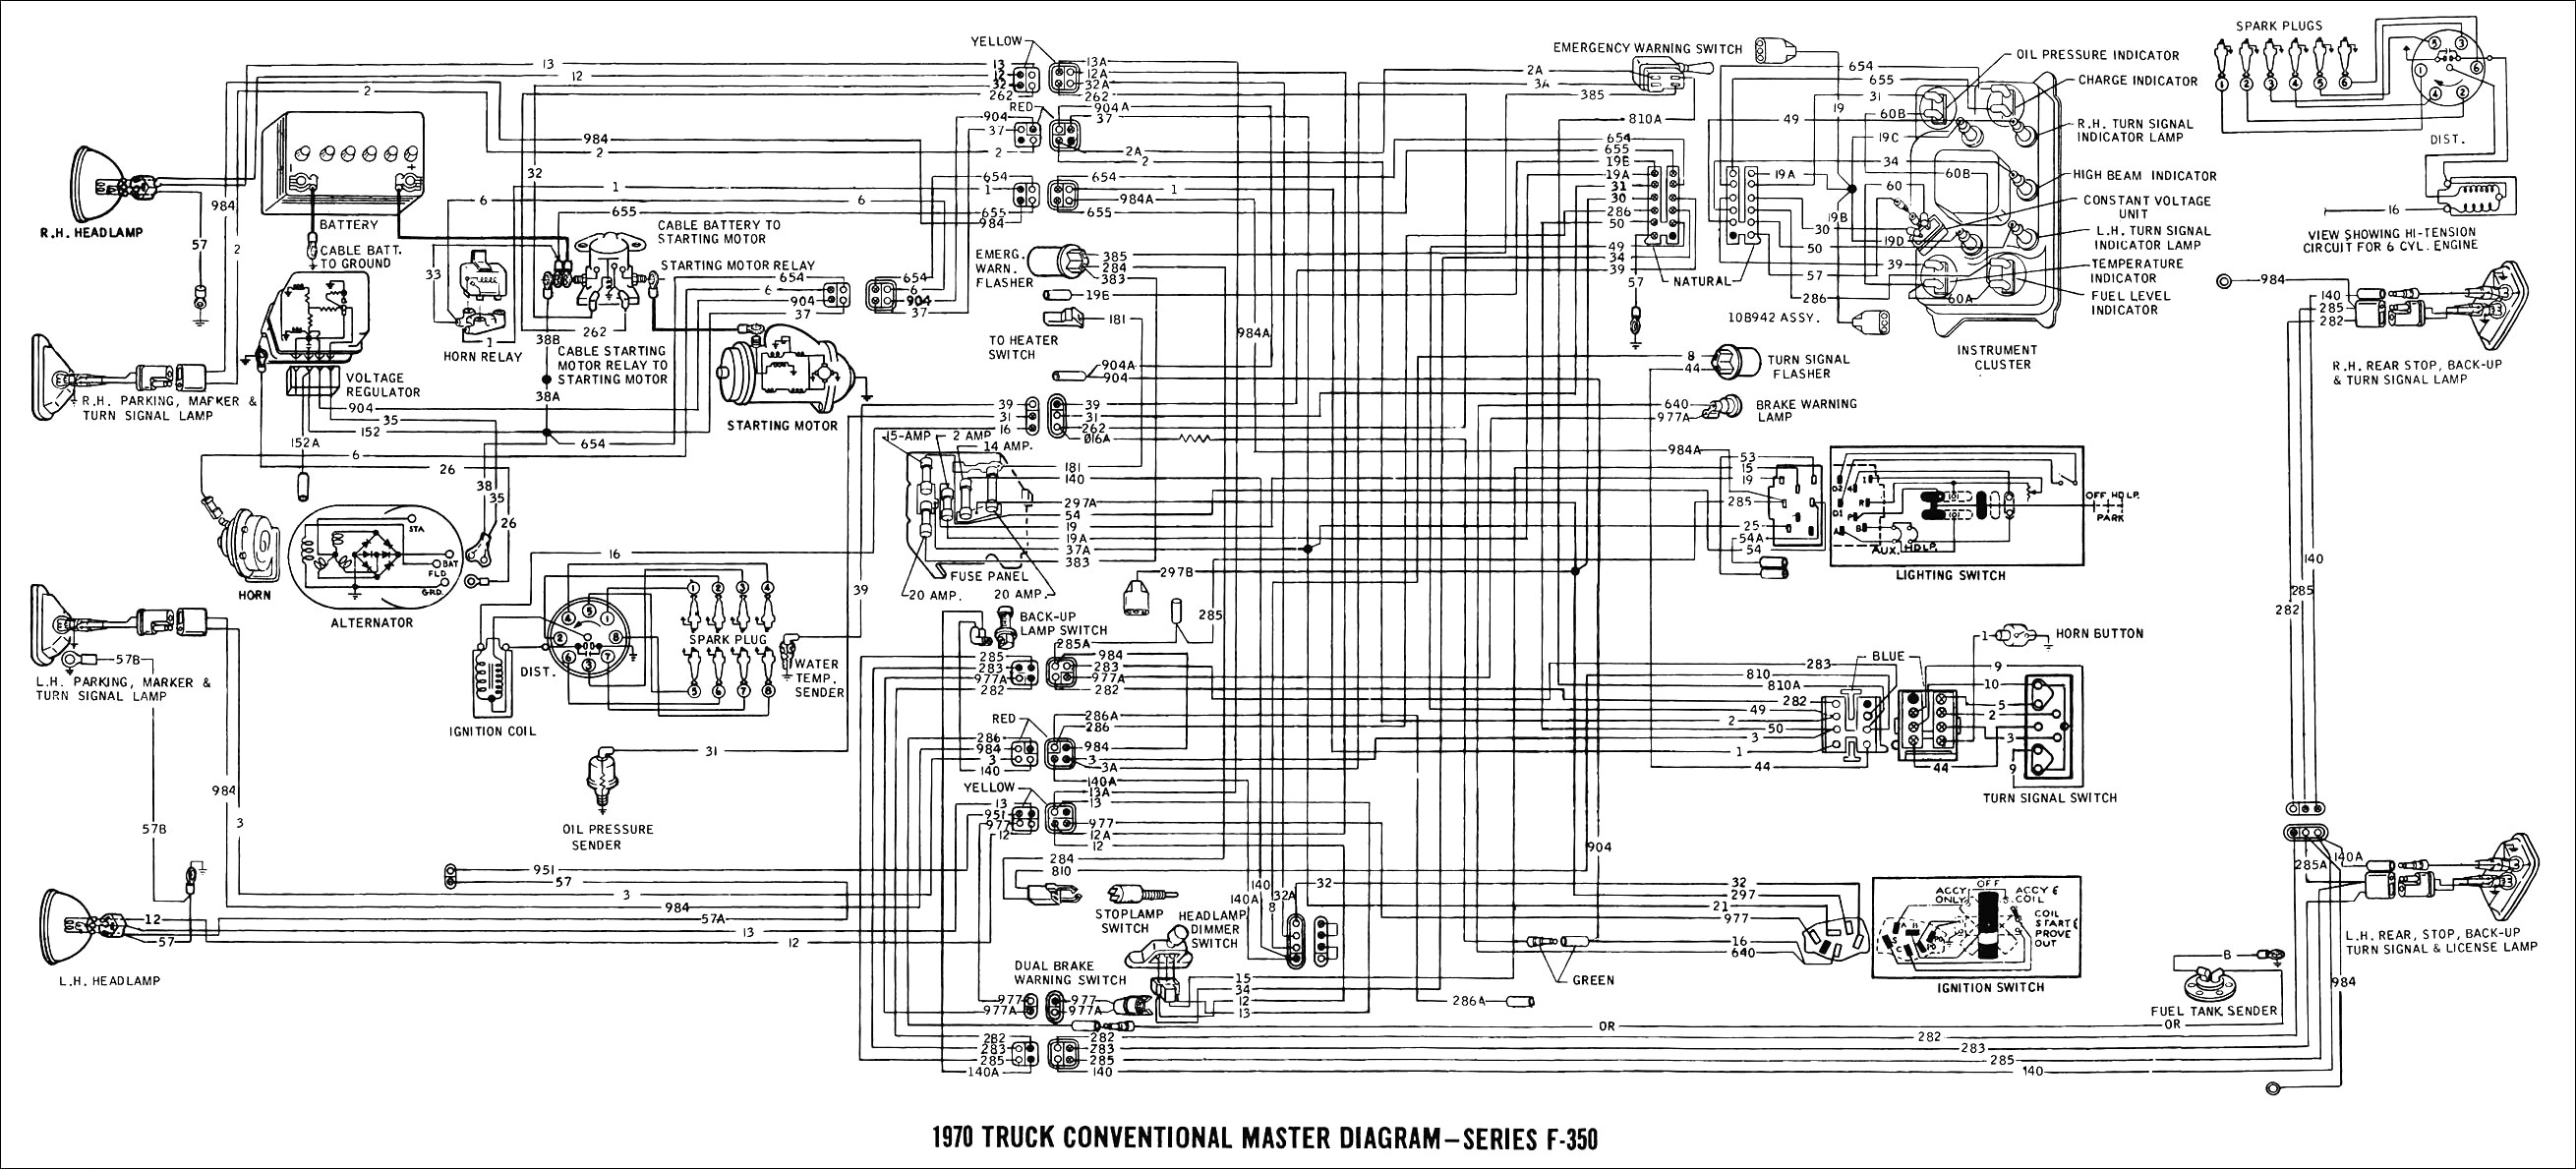 96 ford explorer alternator wiring diagram wiring diagram data schema 1996 Ford Mustang Alternator Wiring Diagram 97 ford explorer alternator wiring wiring diagram tutorial 96 ford explorer alternator wiring diagram